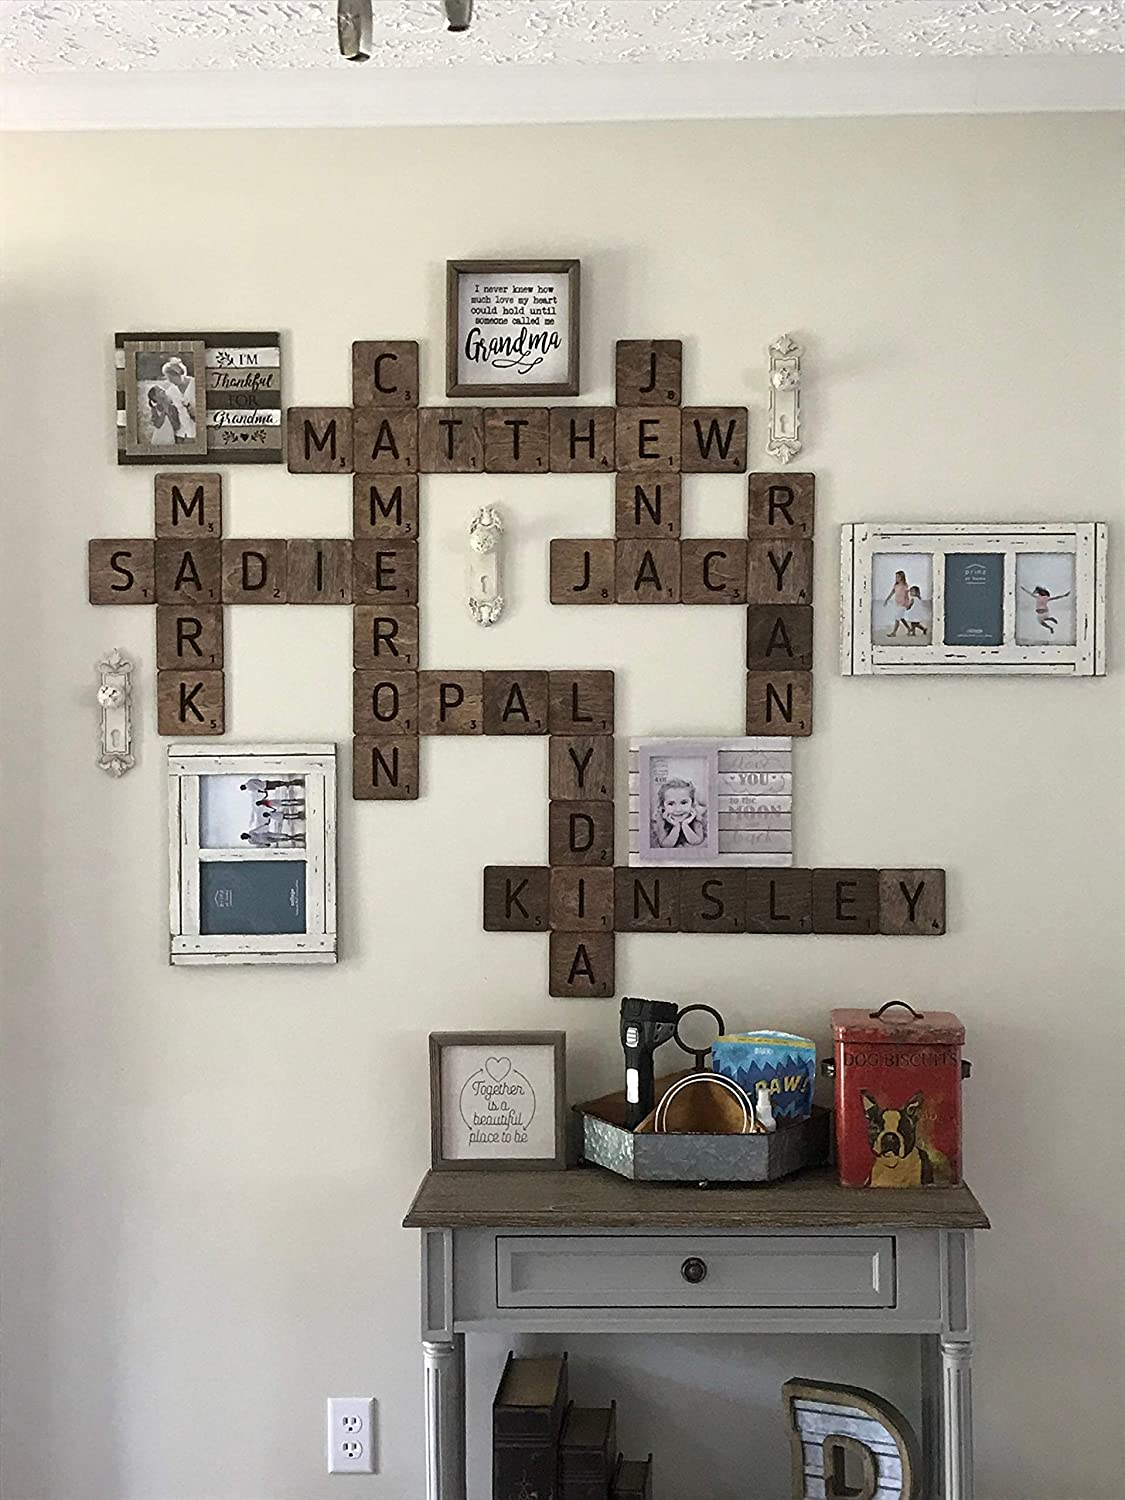 Labour Day Wall Large Scrabble Tiles Letters Wood Wall Rustic Art Family Living Room Bedroom Kitchen Valentines Day Gift For Husband Wife Personalized